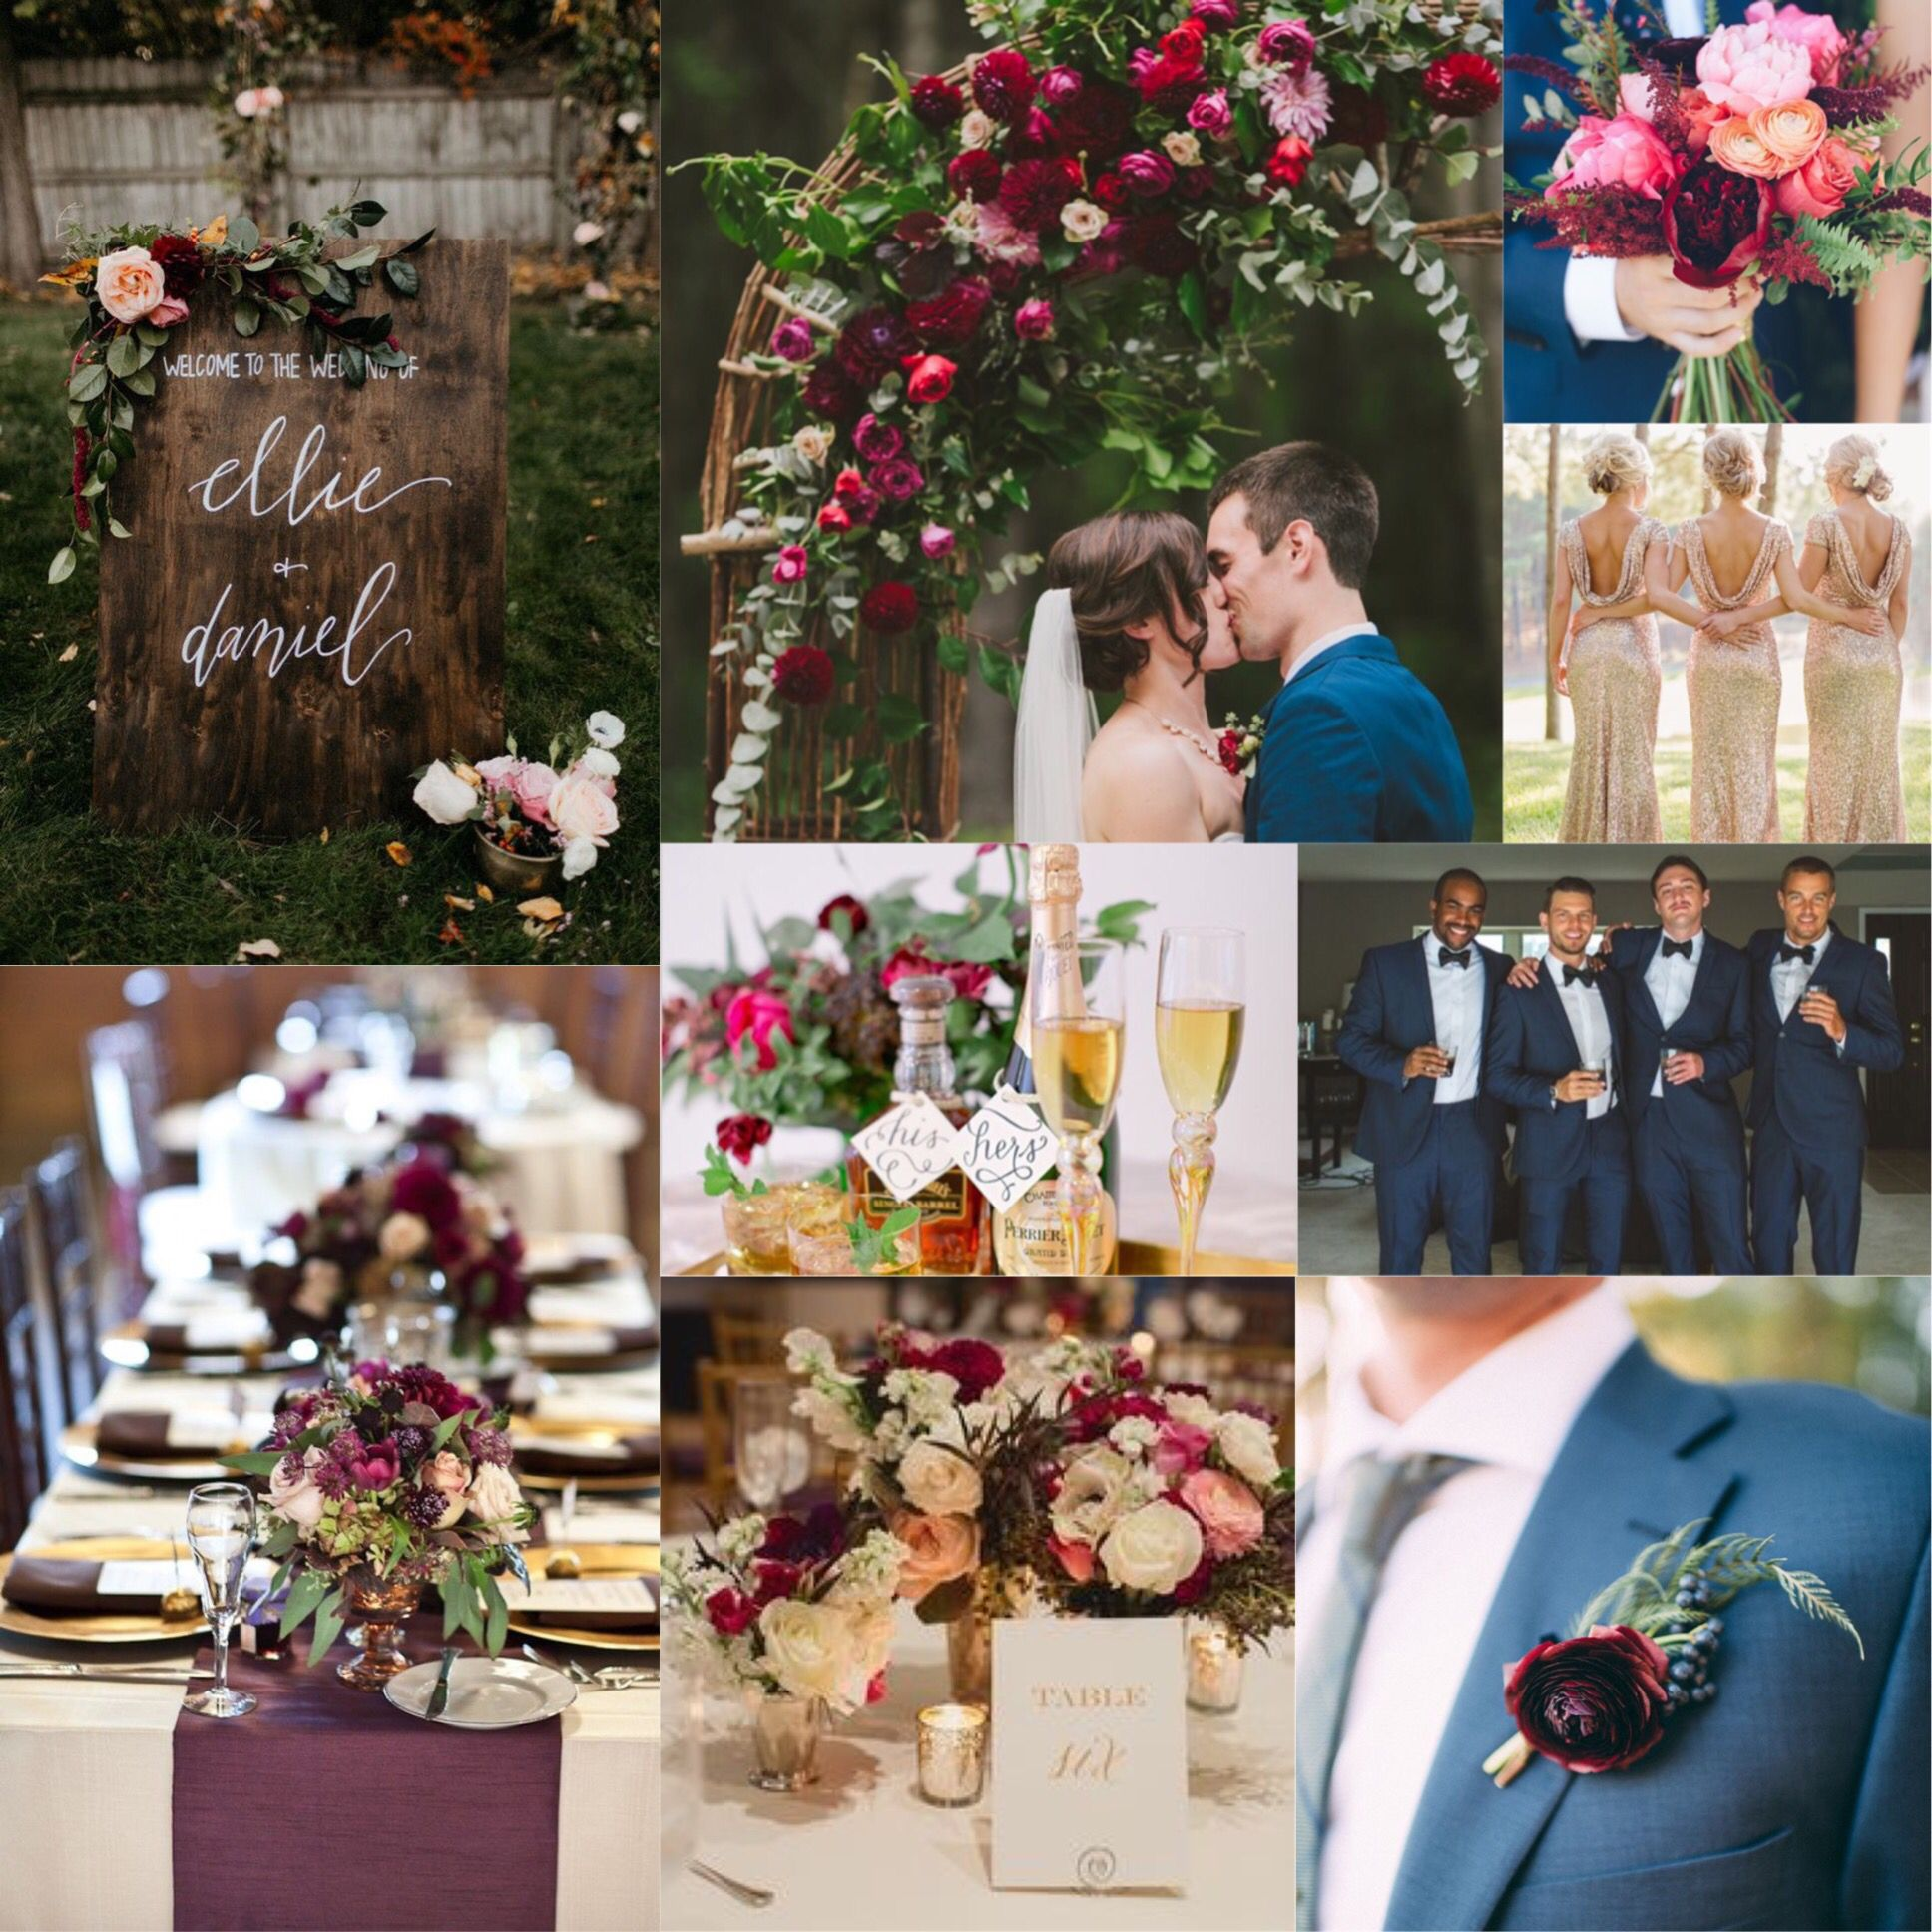 burgundy plum champagne and navy wedding lots of greenery dream wallpaper diy in philippines fl smartphone hd pics